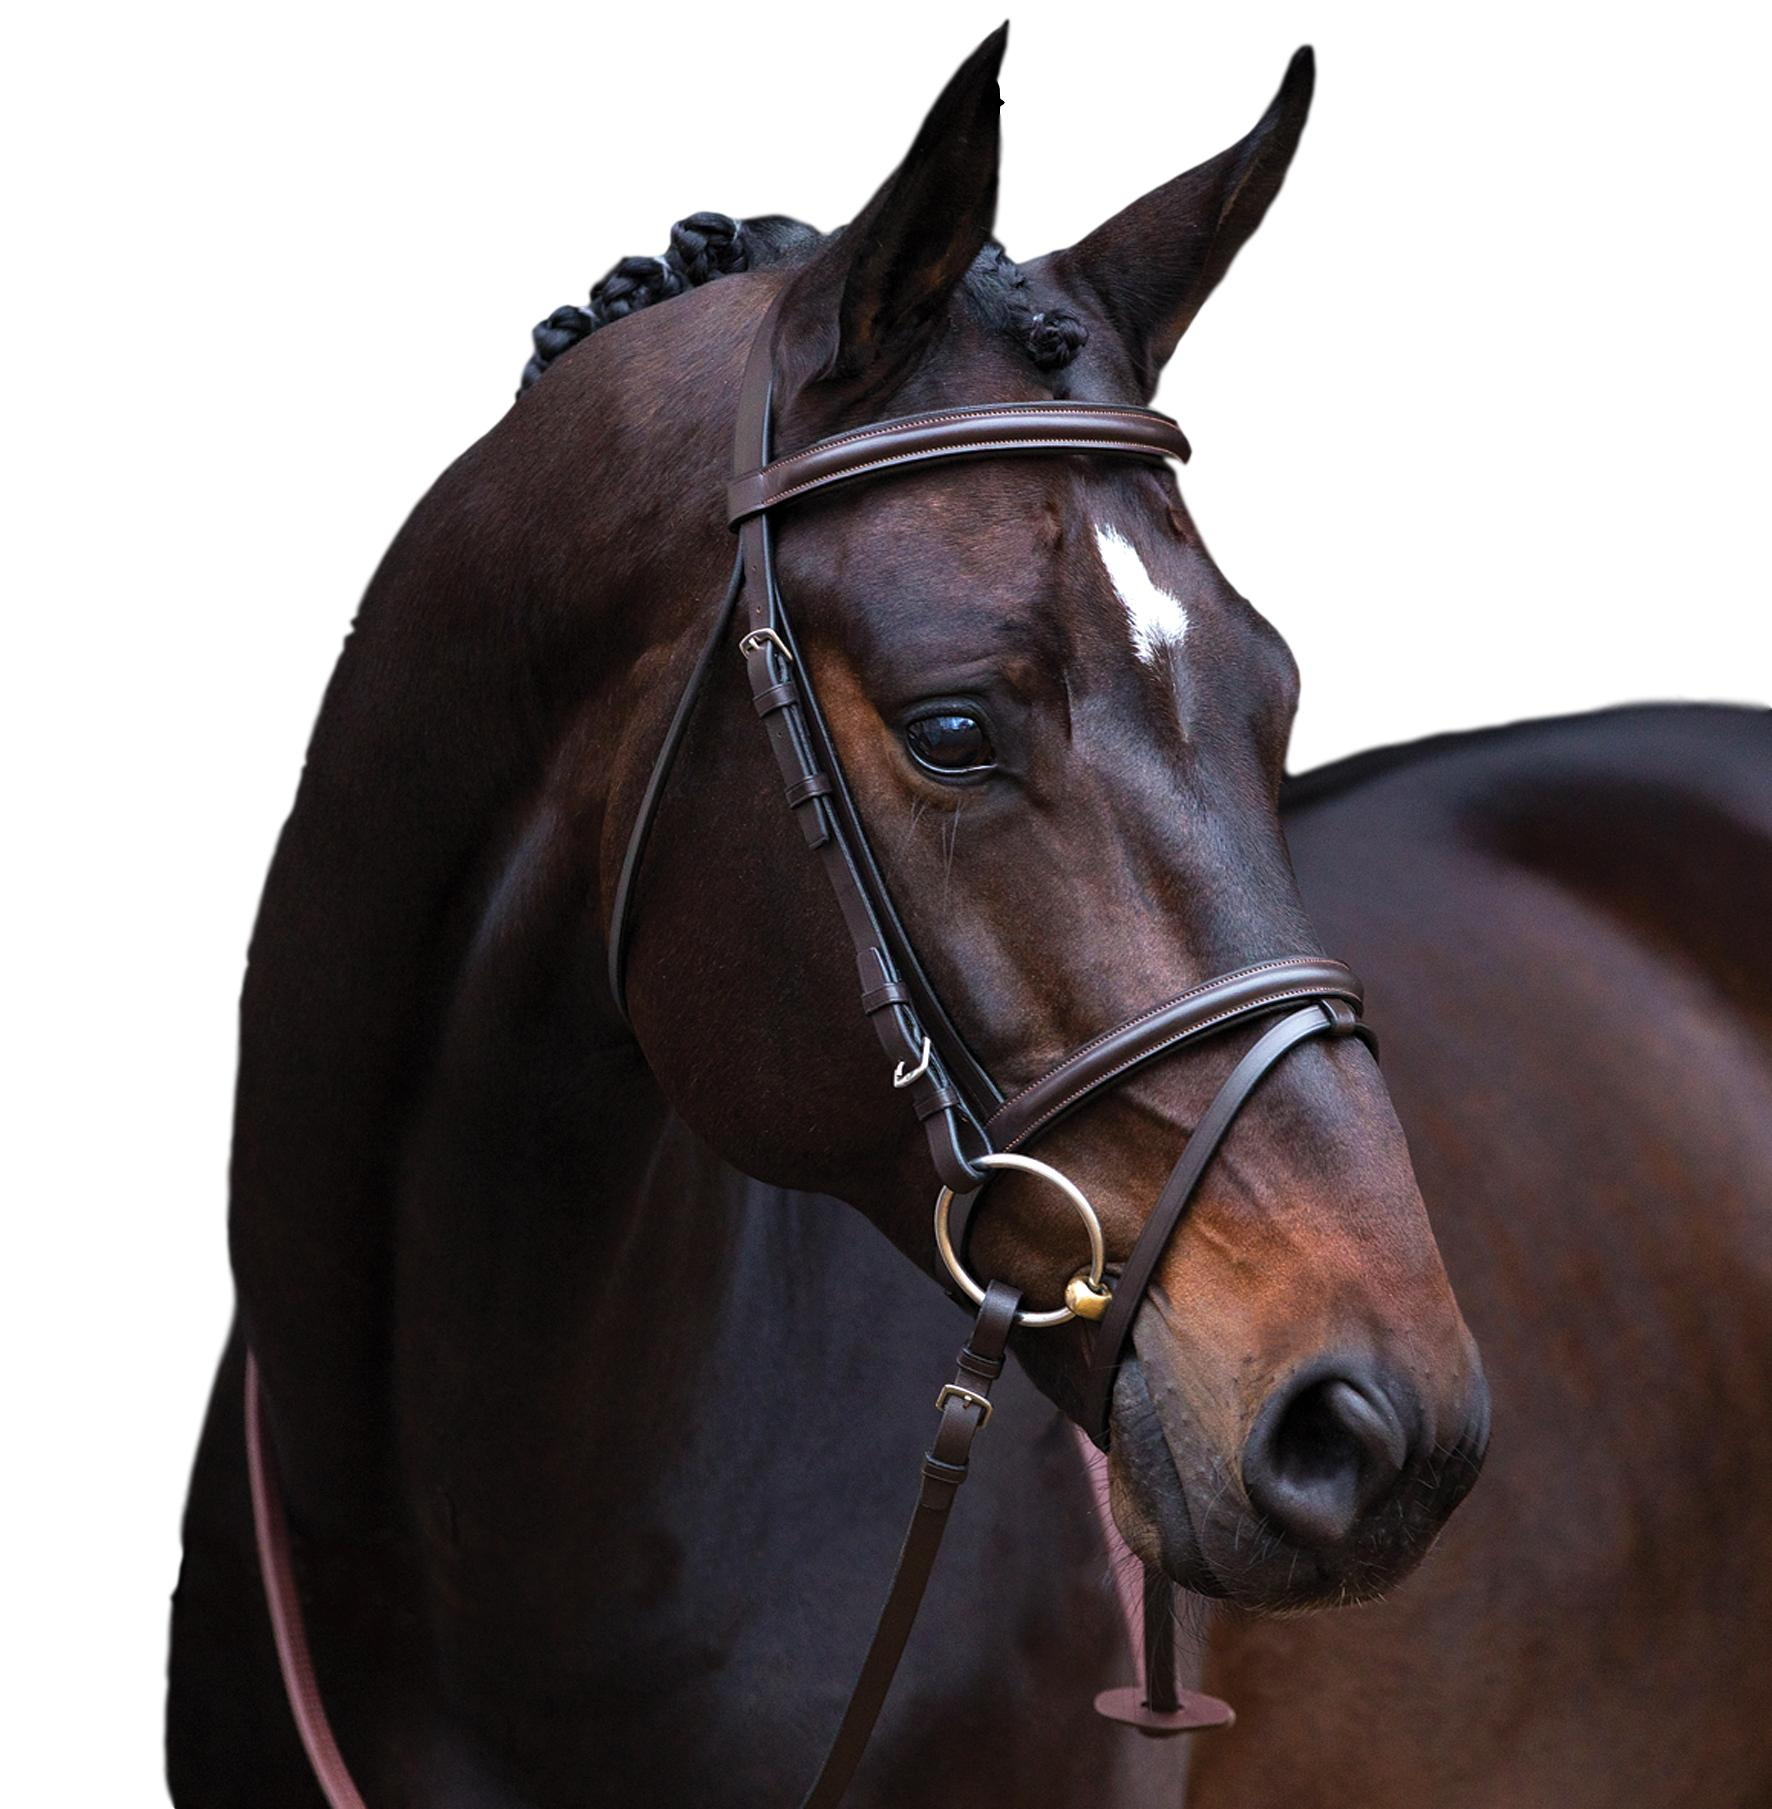 Horseware Ireland Ireland Horseware Amigo Padded and Shaped Leder Bridle with Rubber Reins 7beaa2